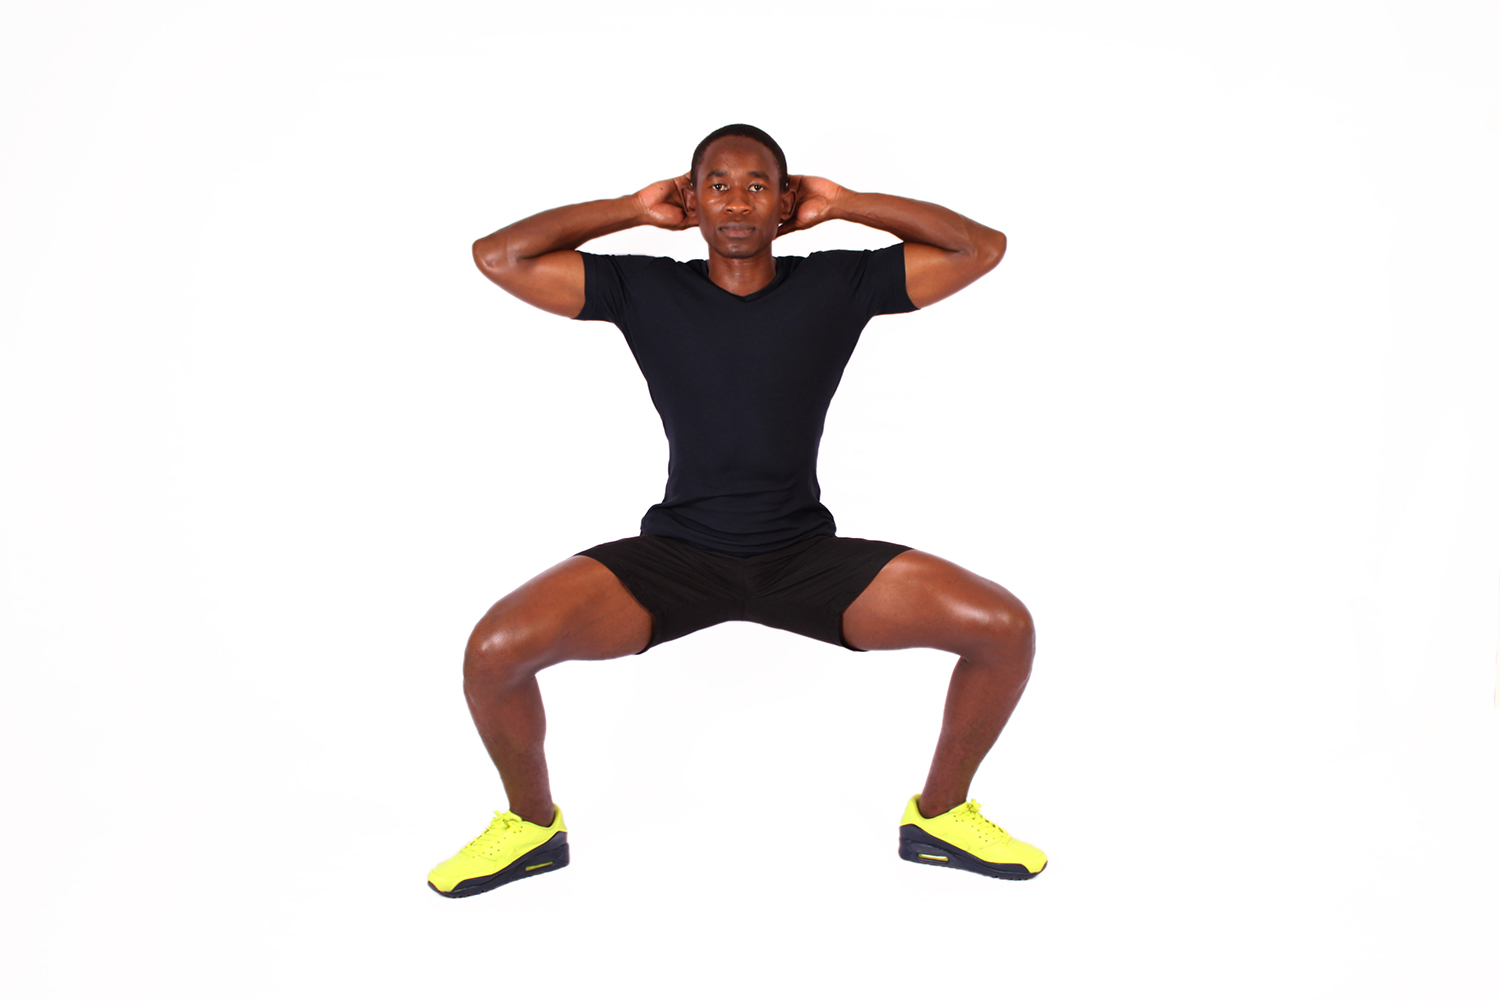 Fitness man doing sumo squat exercise